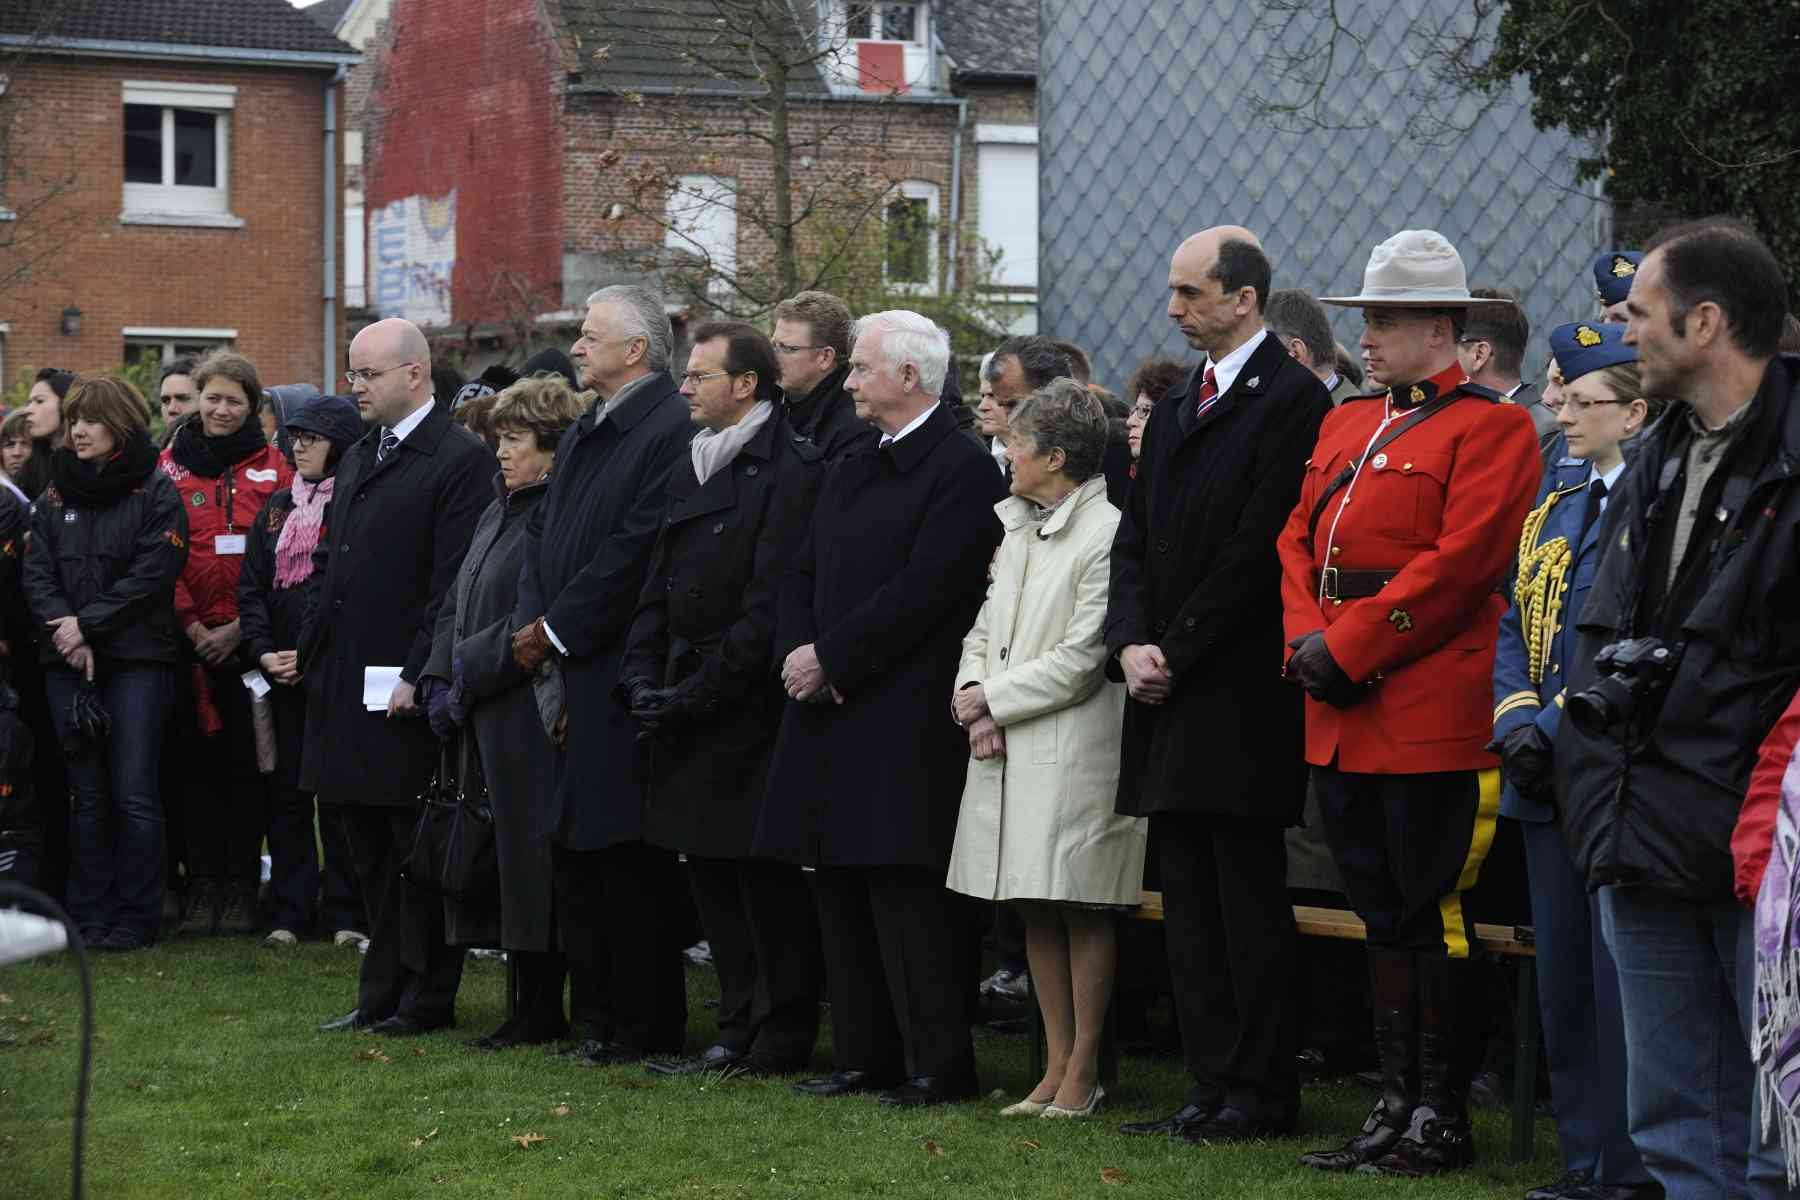 Their Excellencies were joined, among others, by Steven Blaney, Minister of Veterans Affairs.